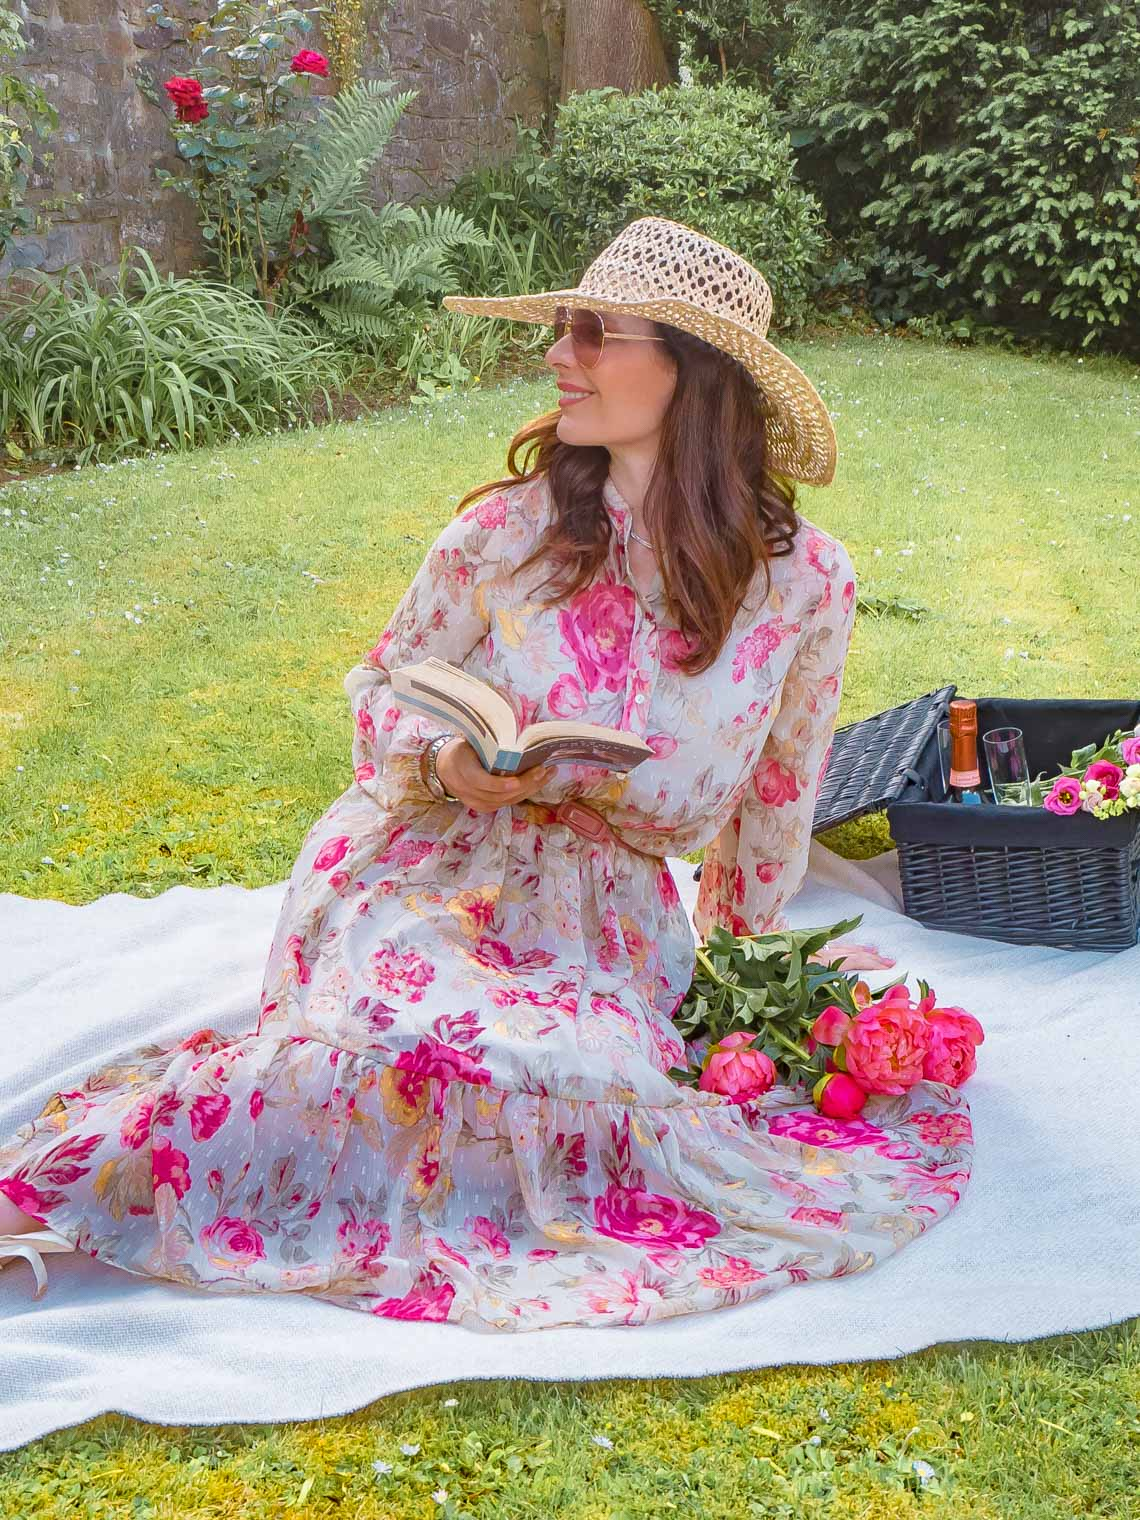 H&M floral dress, picnic in the garden